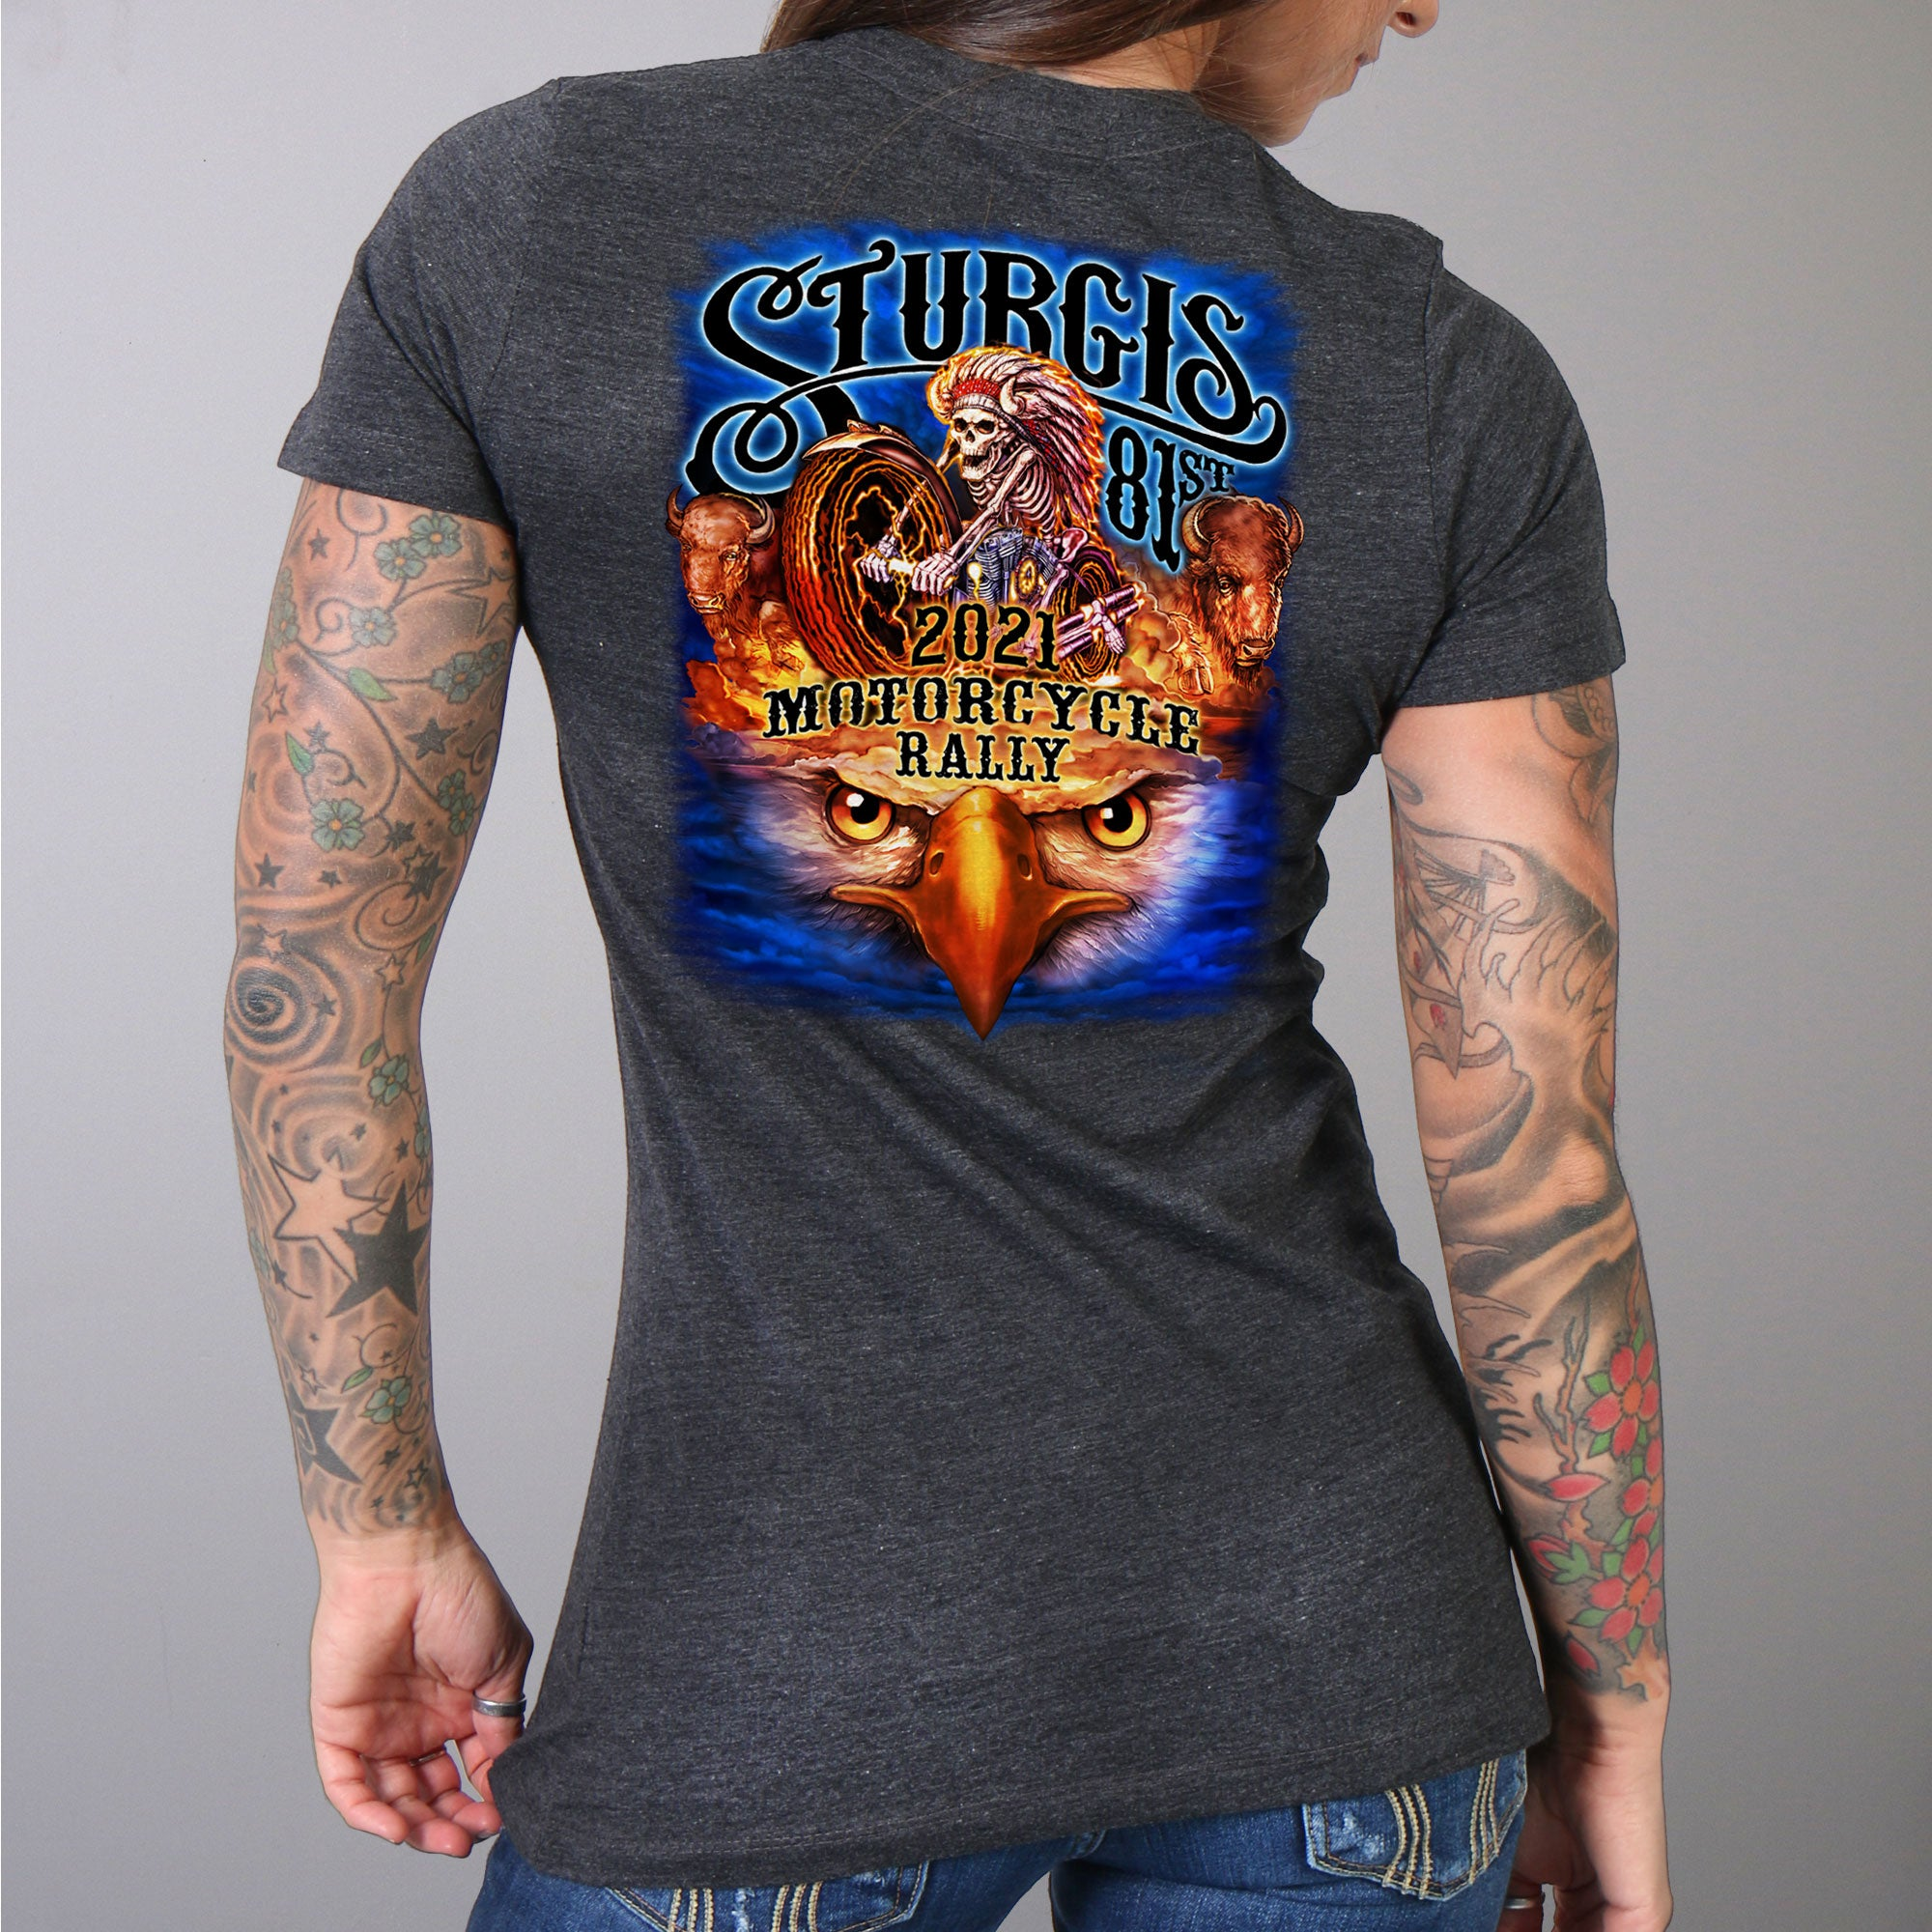 Sturgis 2021 Motorcycle Rally #1 Design American Spirit T shirt